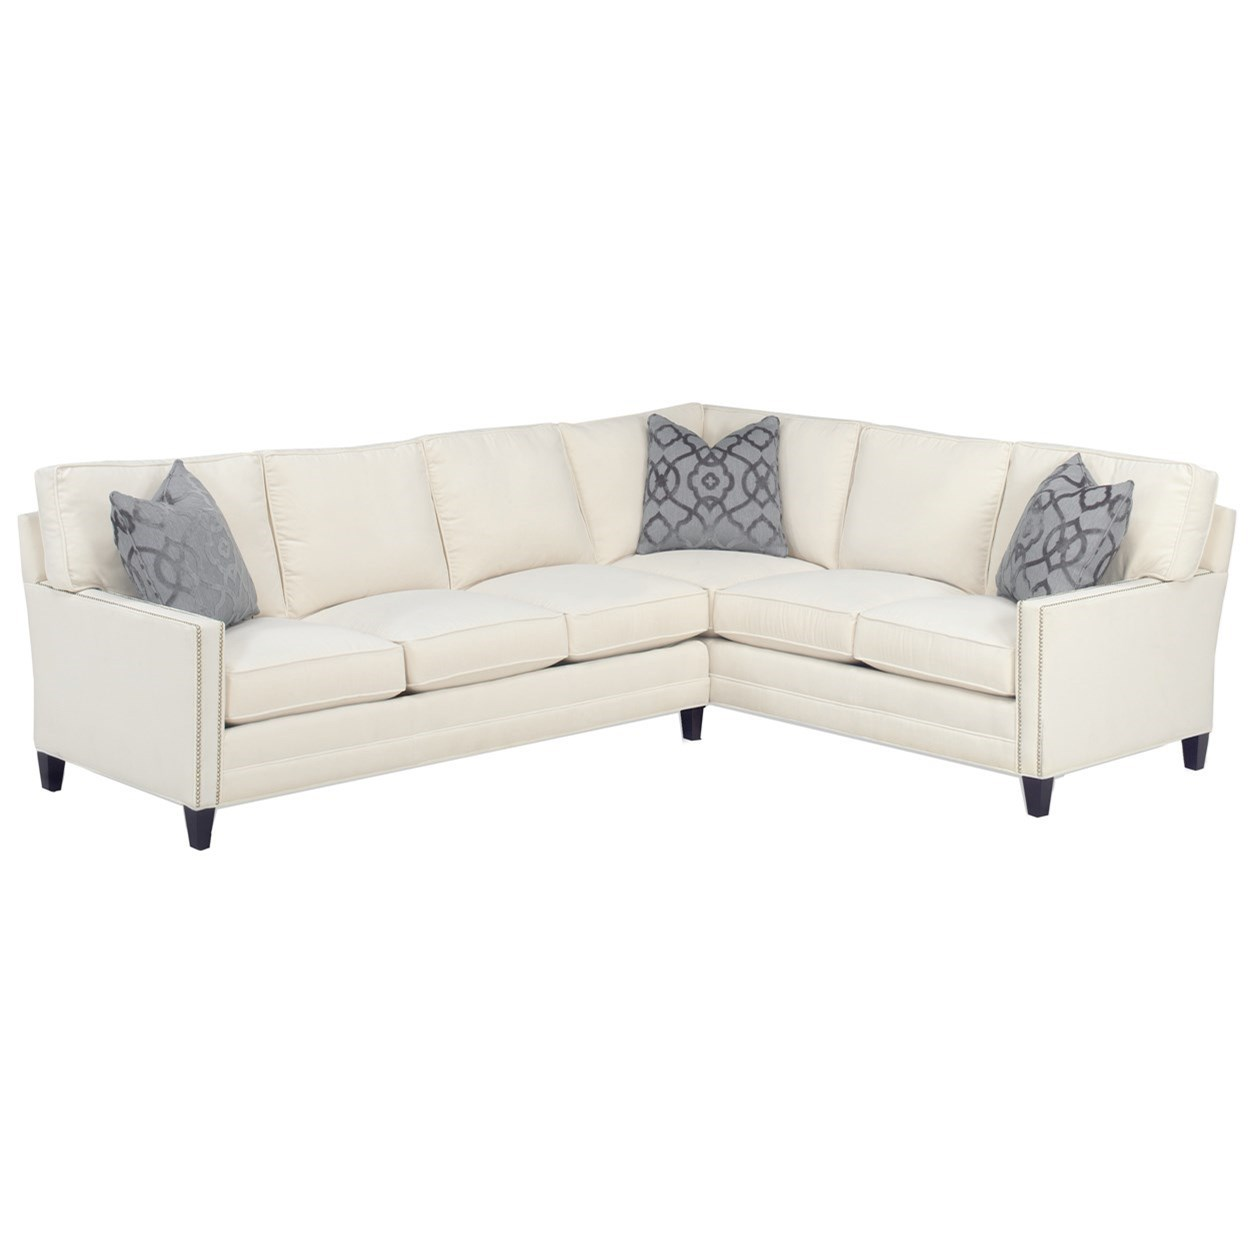 Personal Design Series Customizable Bristol 2 Pc Sectional by Lexington at Johnny Janosik